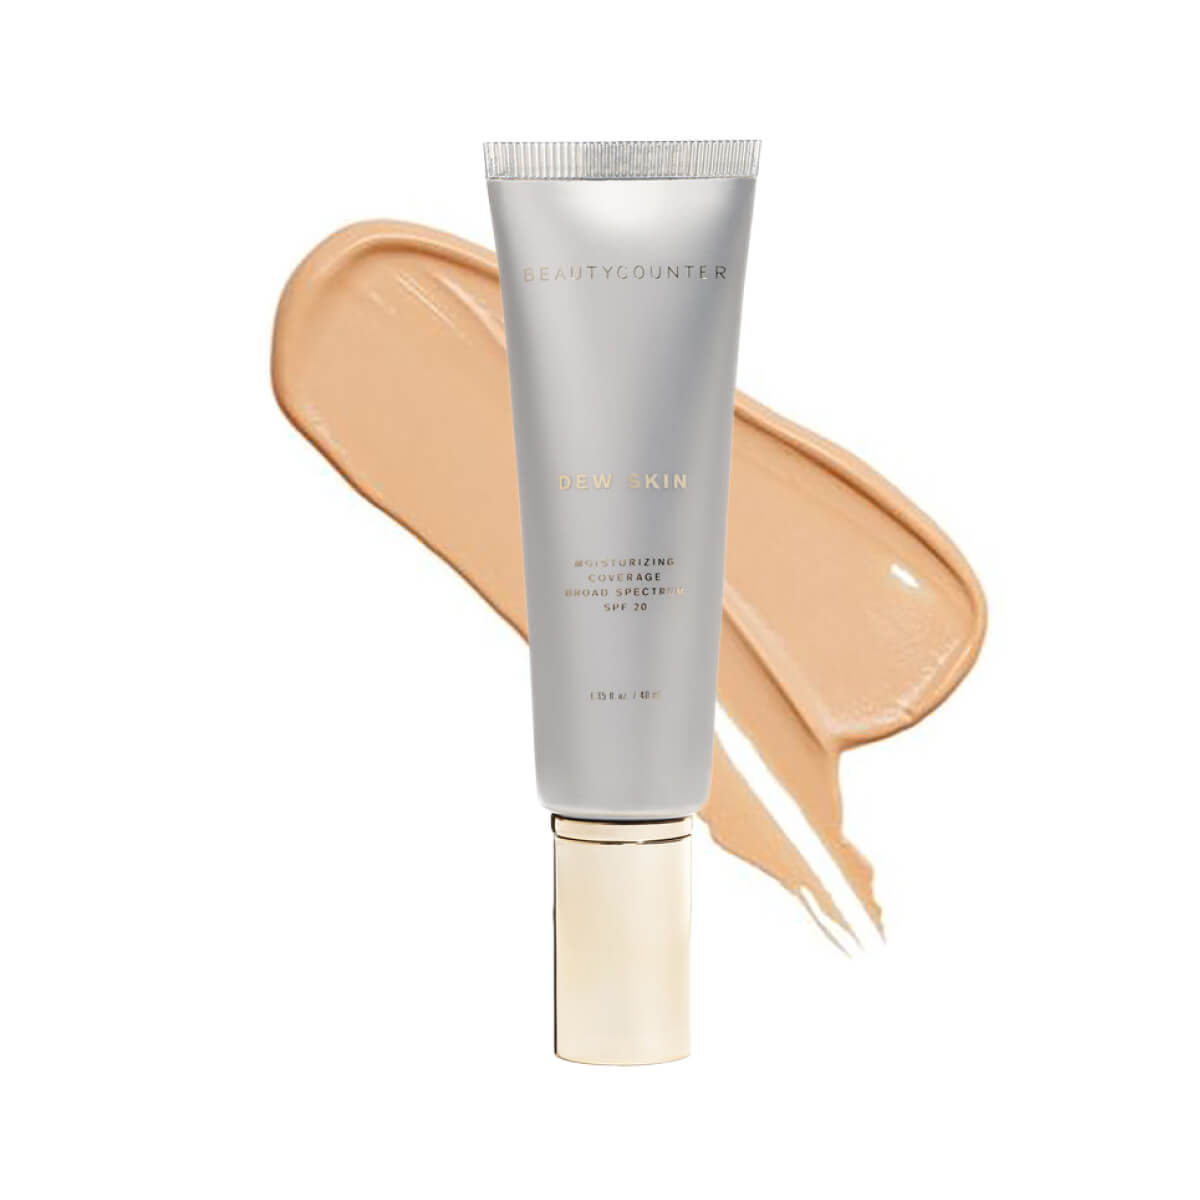 Beautycounter Dew Skin Moisturizing Coverage in No. 2